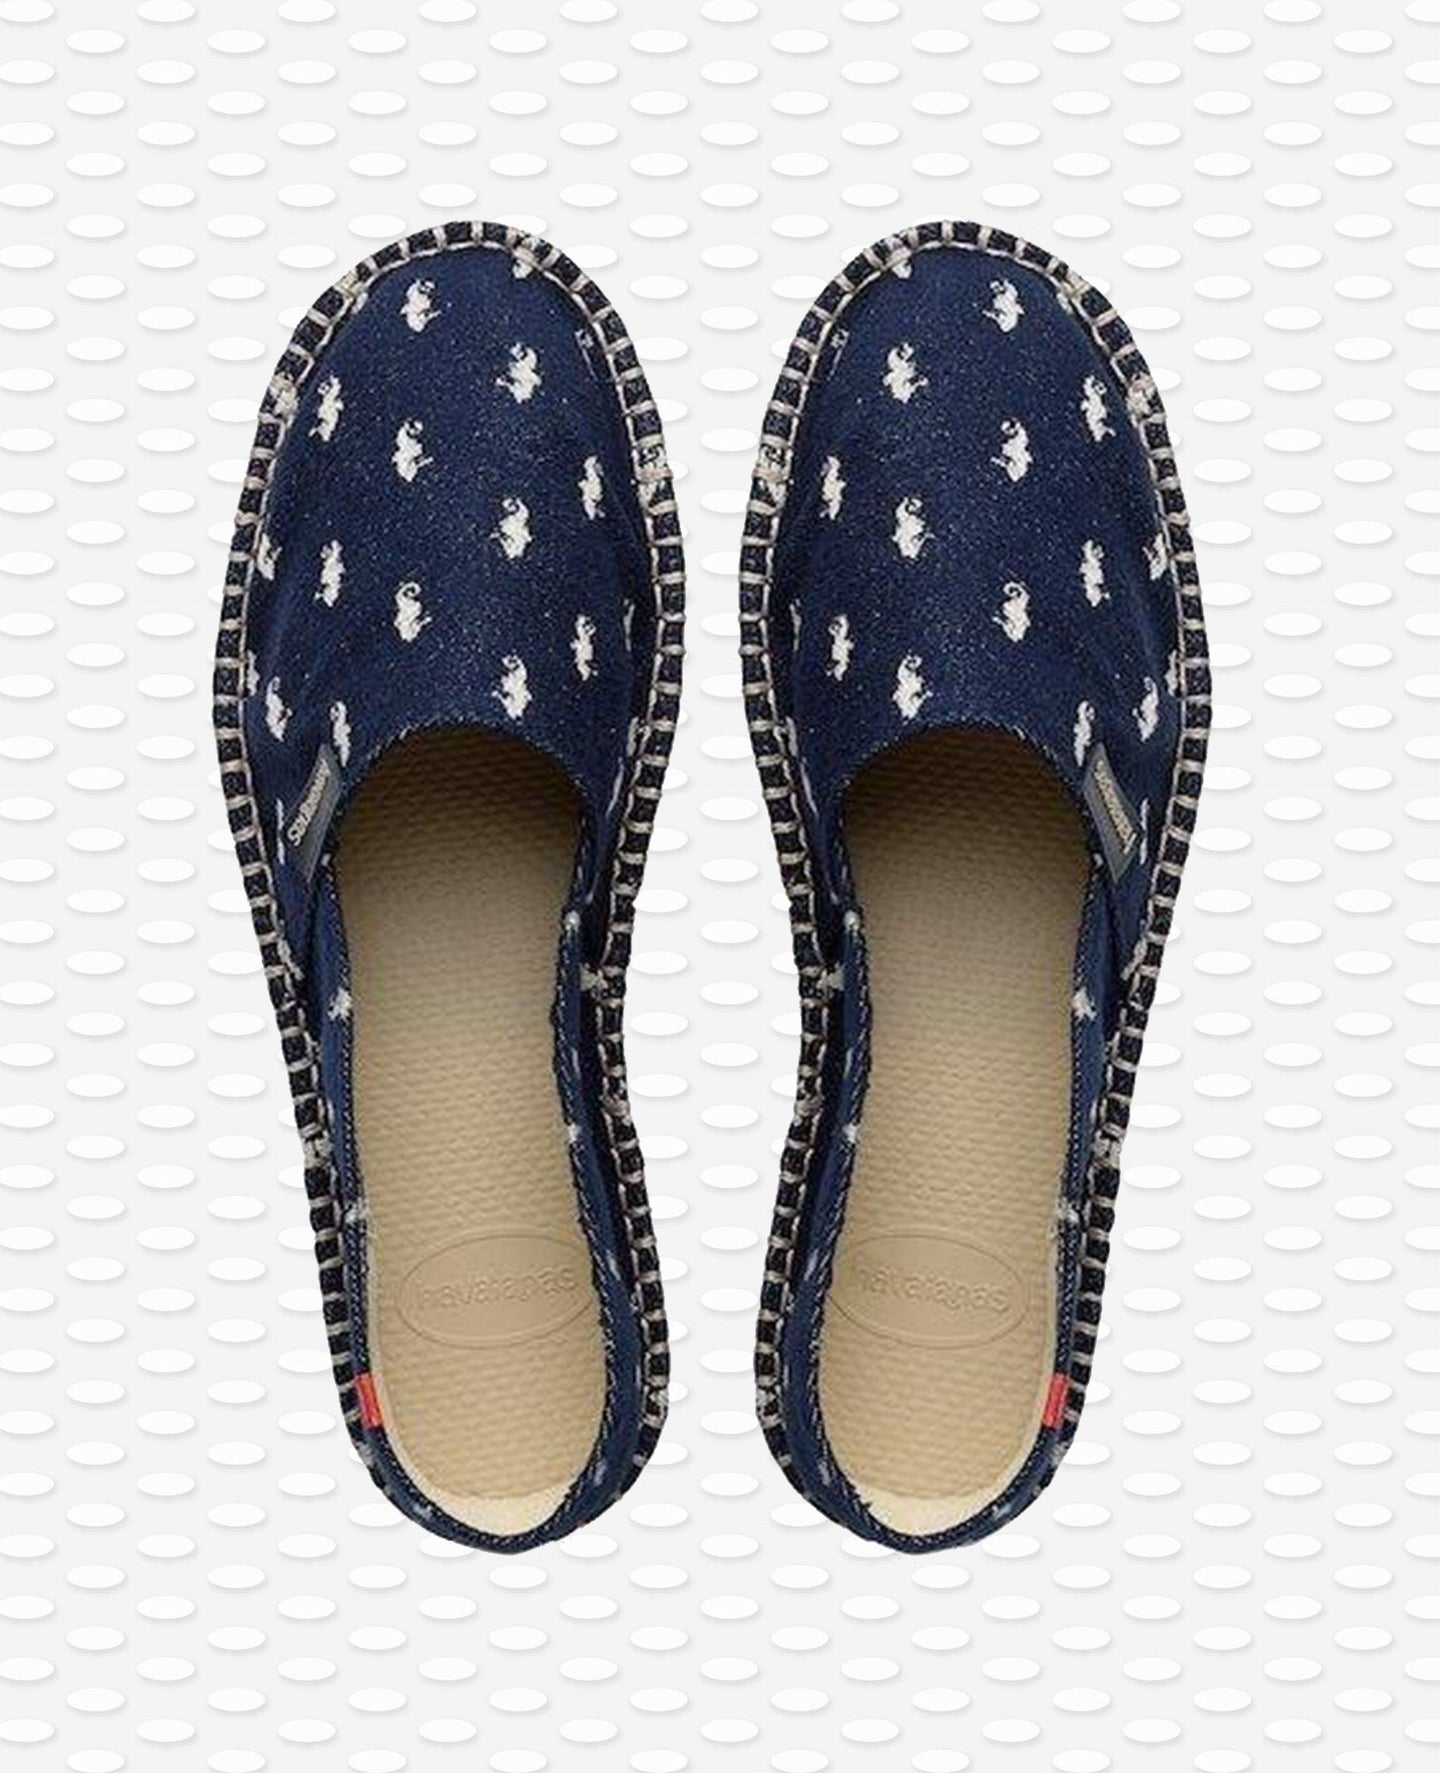 HAVAIANAS ORIGINE BEACH NAVY BLUE